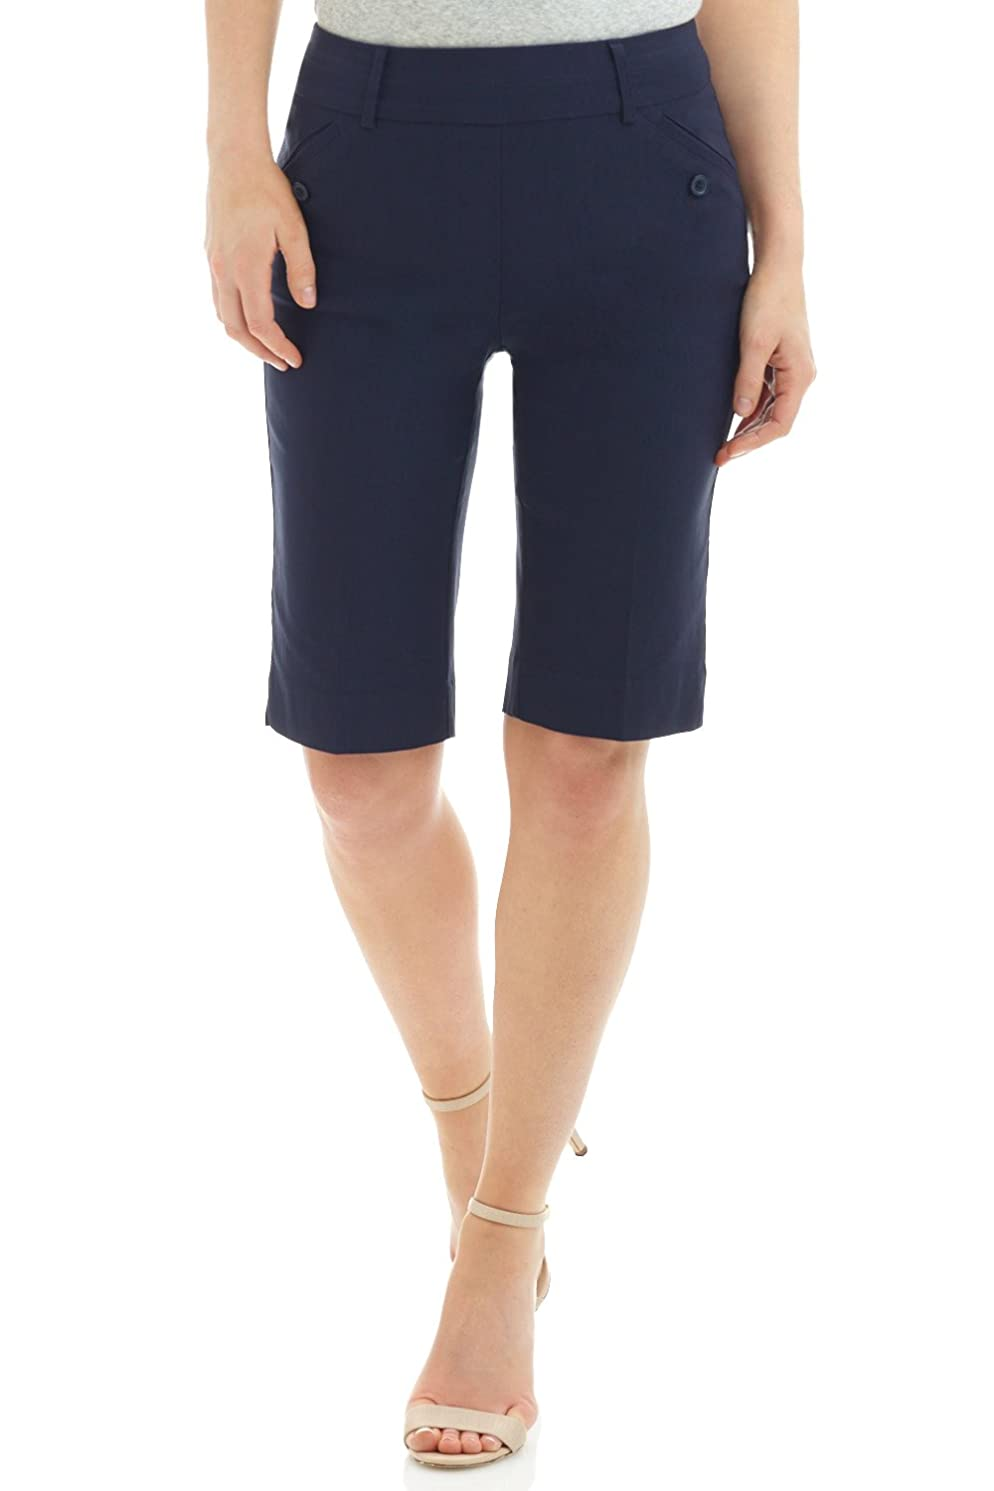 Rekucci Women's Ease in to Comfort Fit Modern Pull On Bermuda Short with Pockets